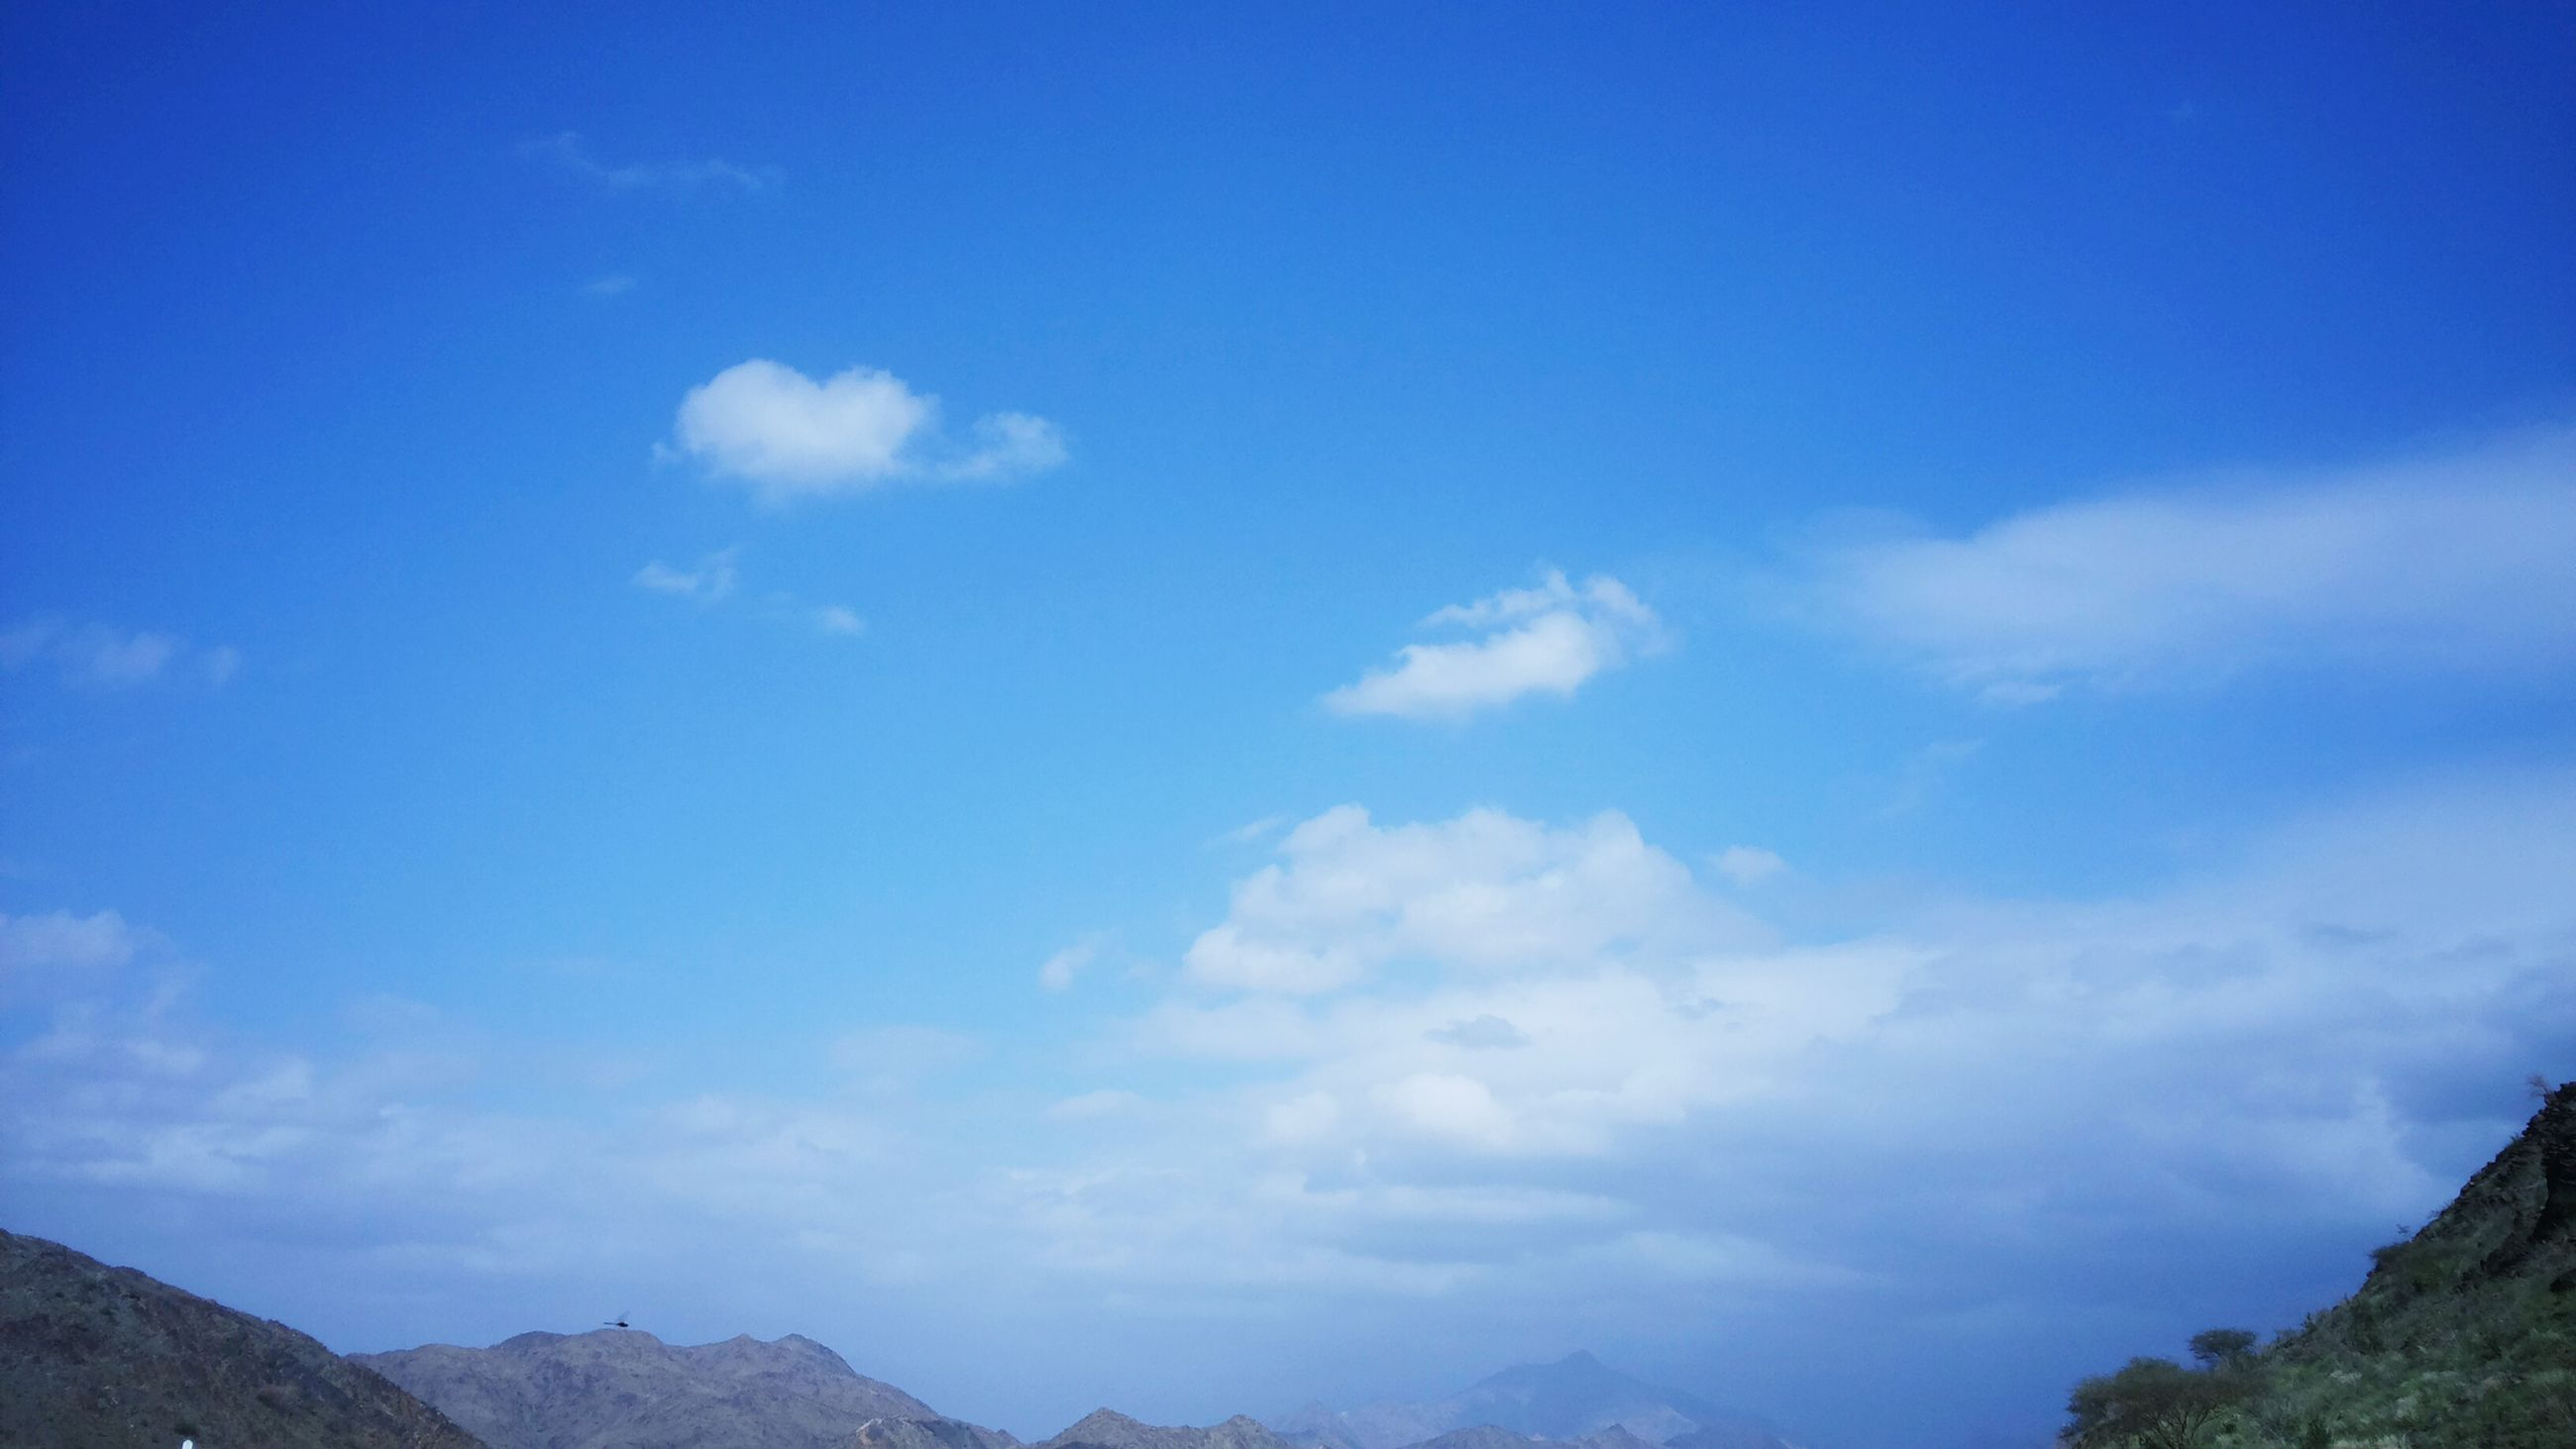 blue, mountain, sky, tranquility, tranquil scene, scenics, beauty in nature, nature, low angle view, mountain range, cloud - sky, landscape, cloud, idyllic, non-urban scene, day, outdoors, copy space, no people, remote